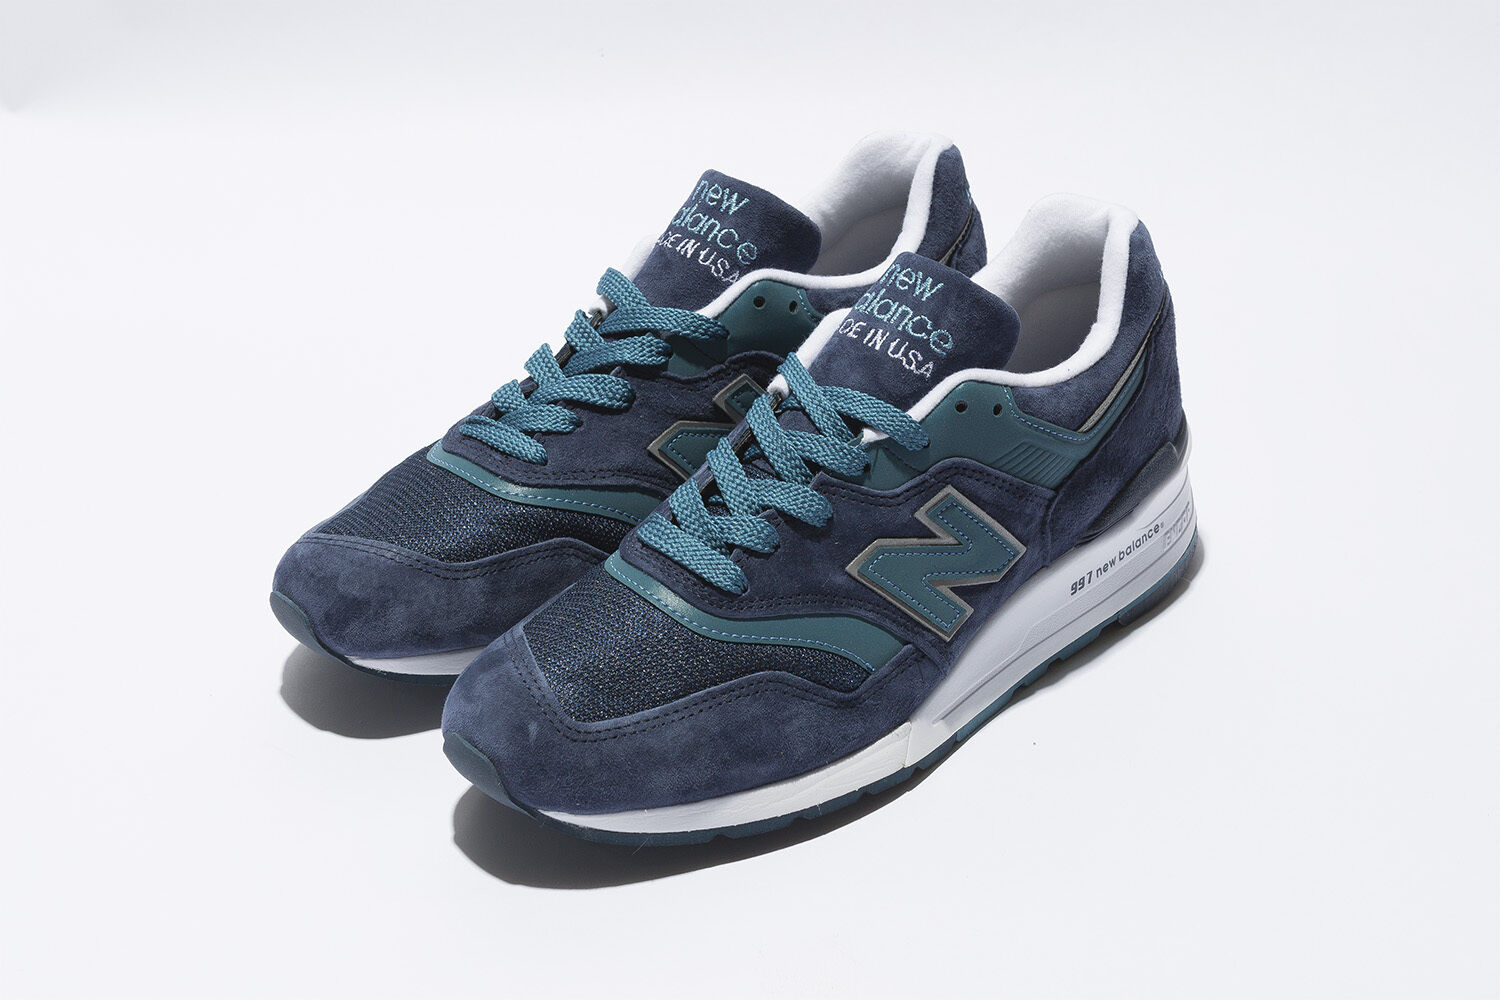 NIB New Balance MENS M997CEF 997 MADE IN USA PREMIUM NAVY BLUE SNEAKERS 8-12